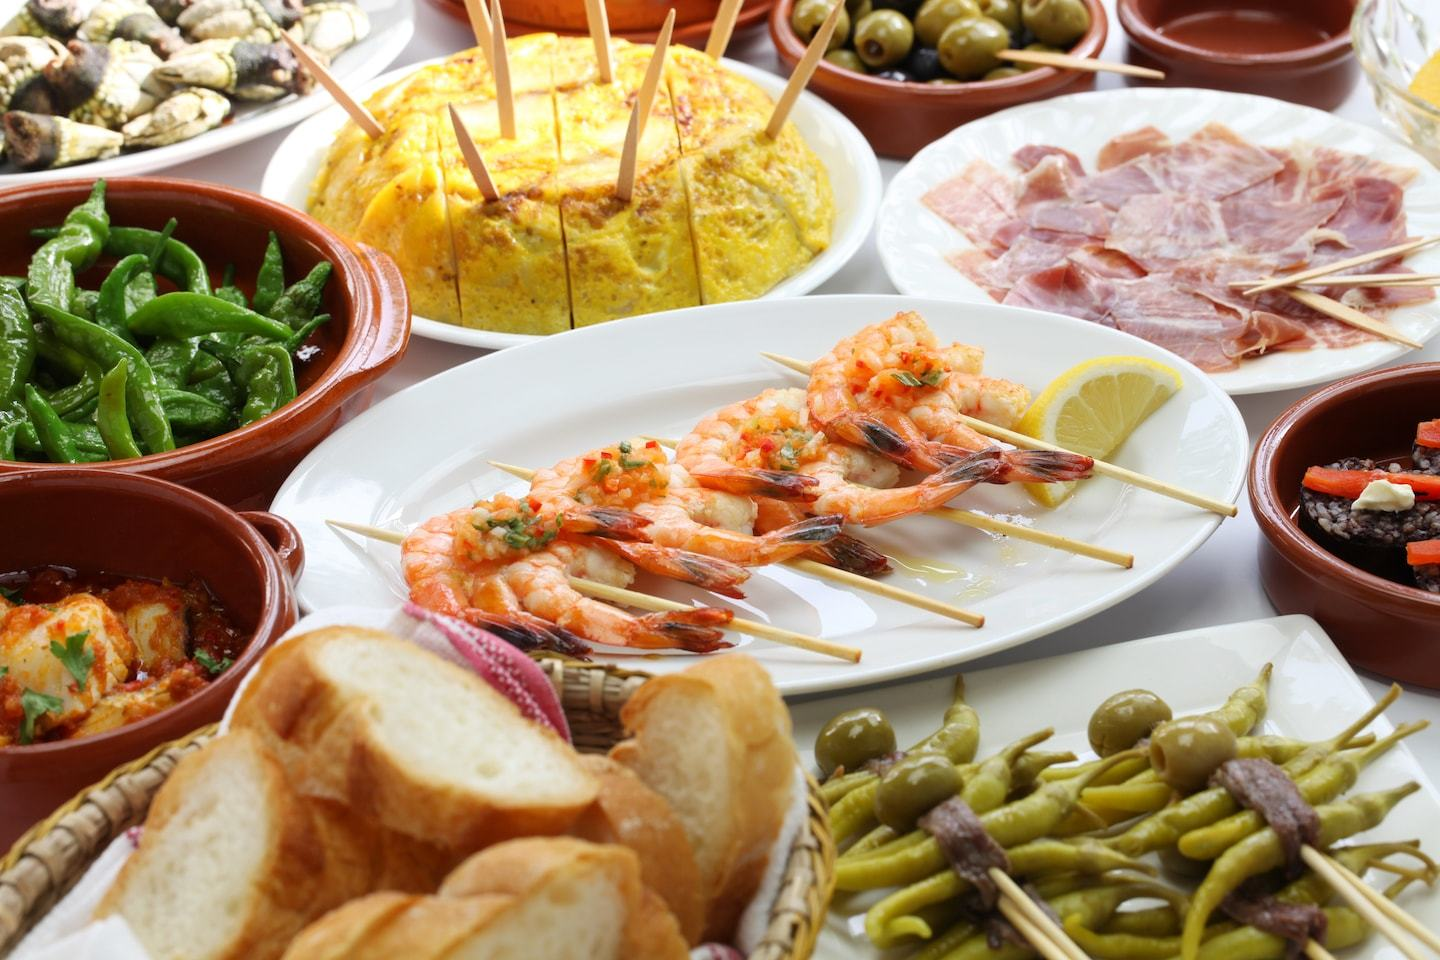 spread of different tapas dishes in spain